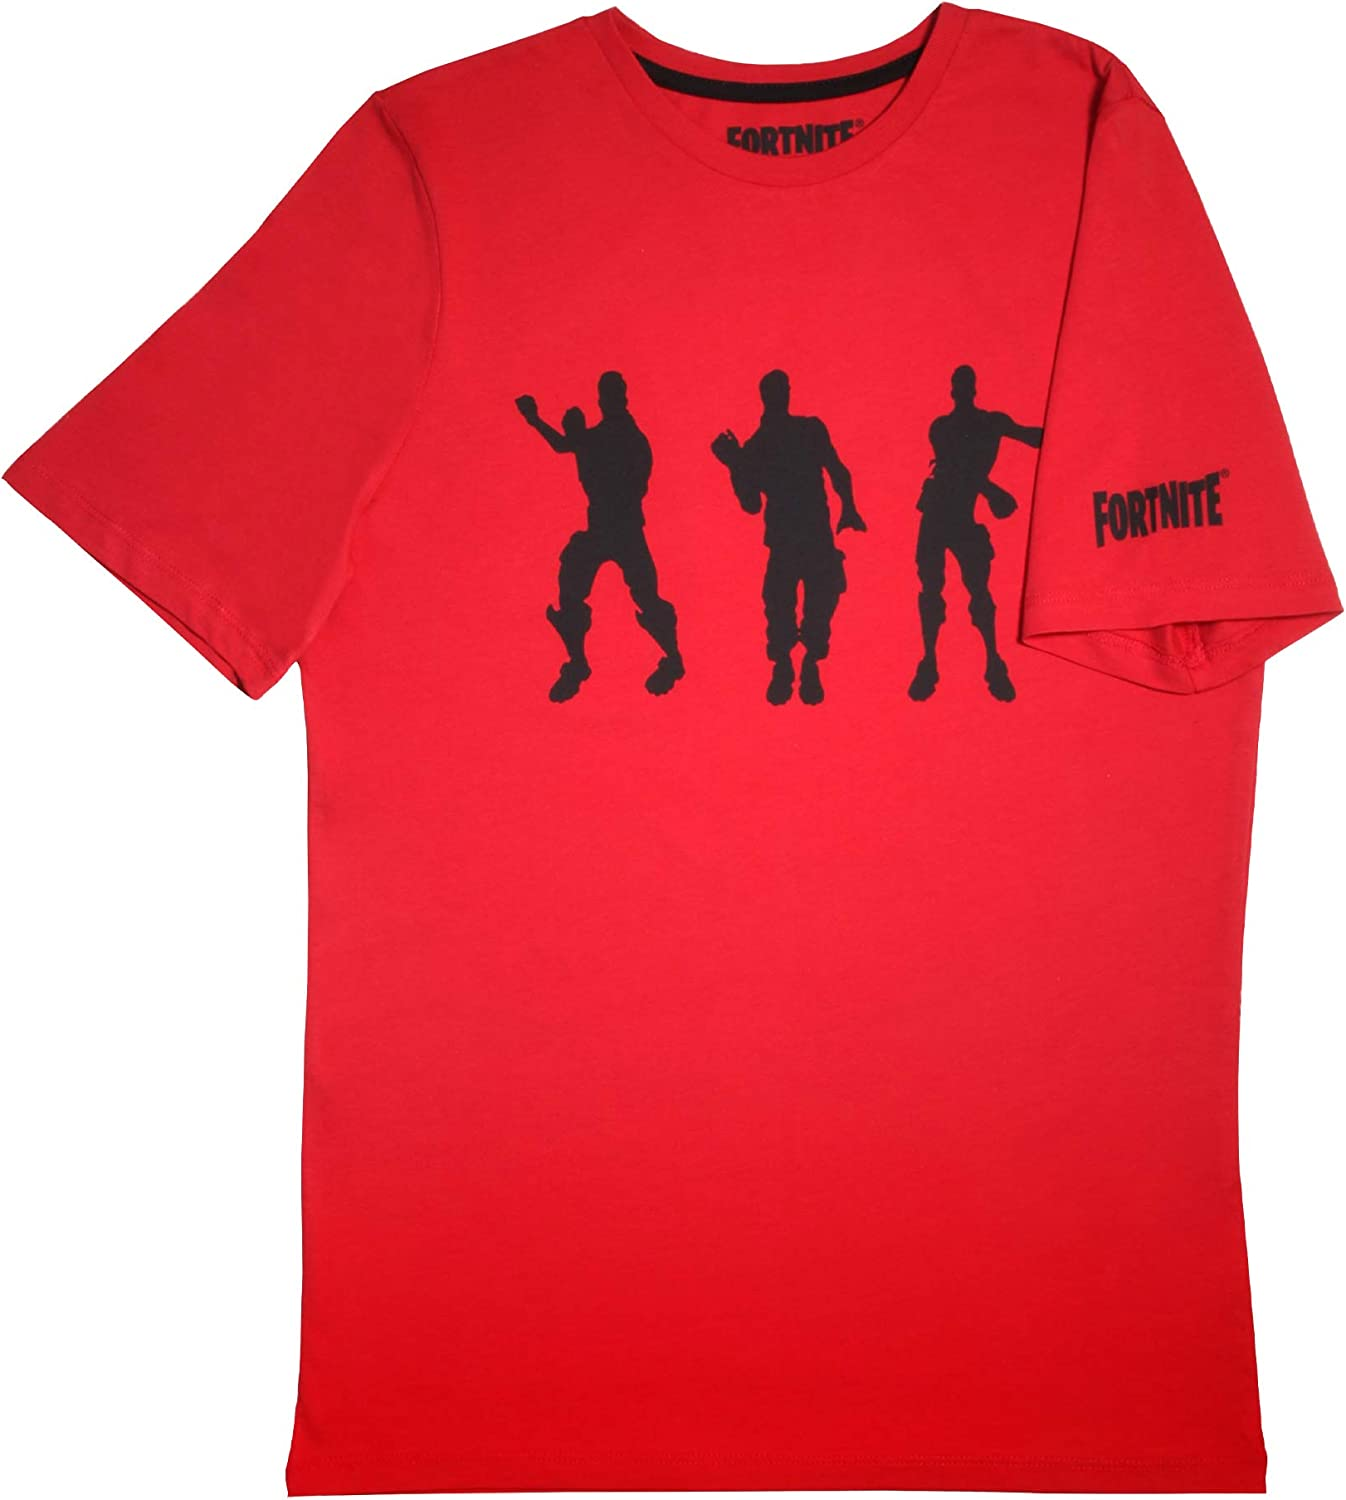 Kids Birthday Gift Idea Childrens Clothes Fortnite Dance Moves Boys T-Shirt Tween Teen School Boys Gaming Top PS4 PS5 Xbox PC Gamer Gifts Official Merchandise